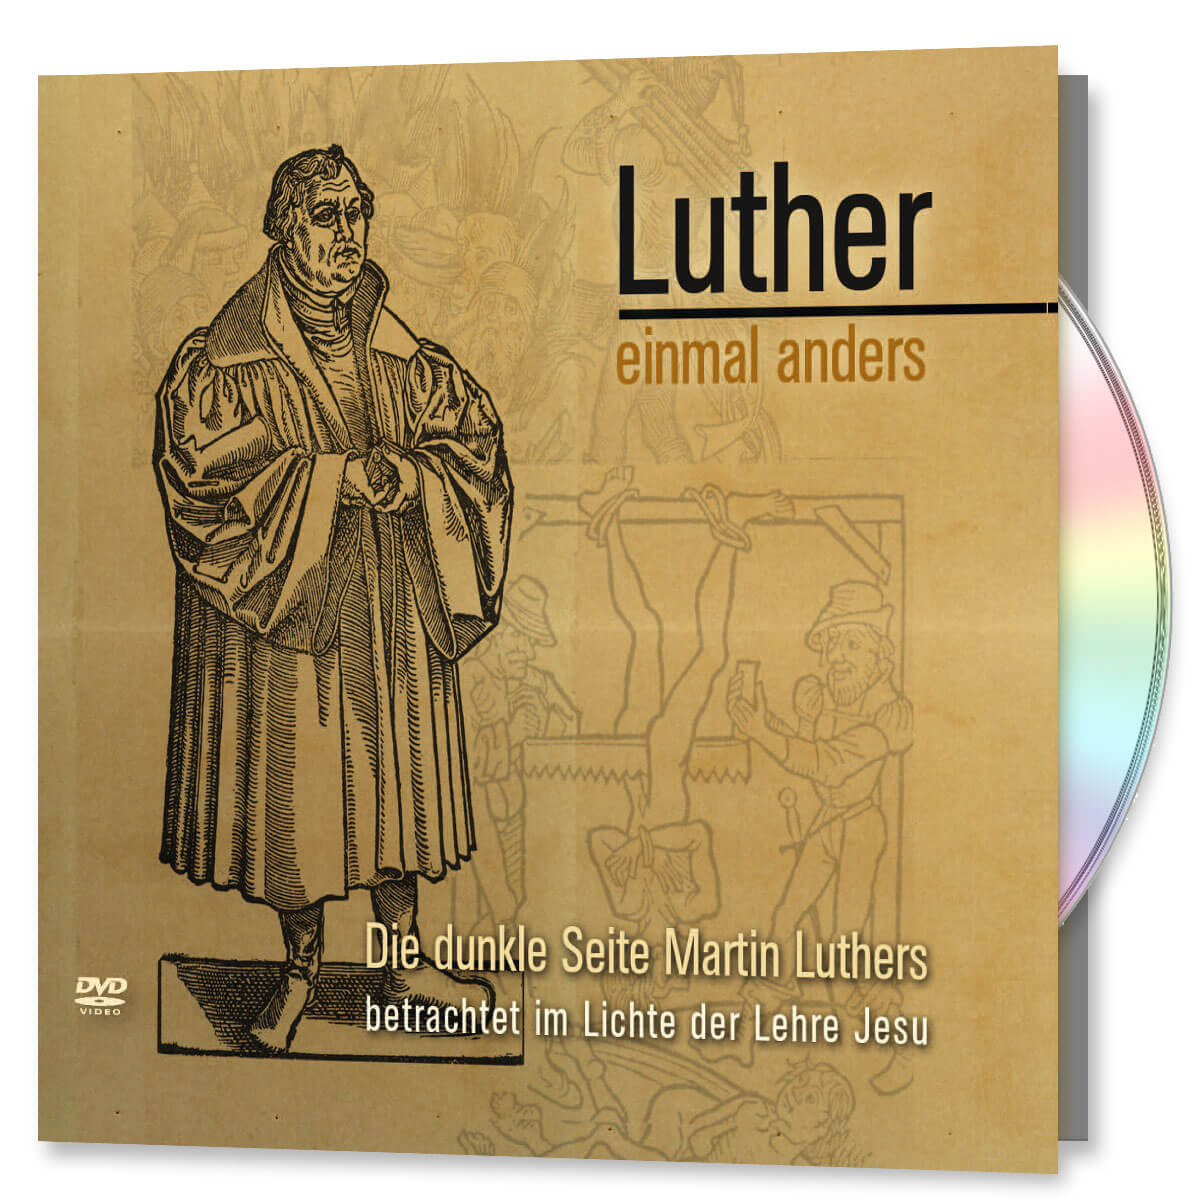 Luther einmal anders